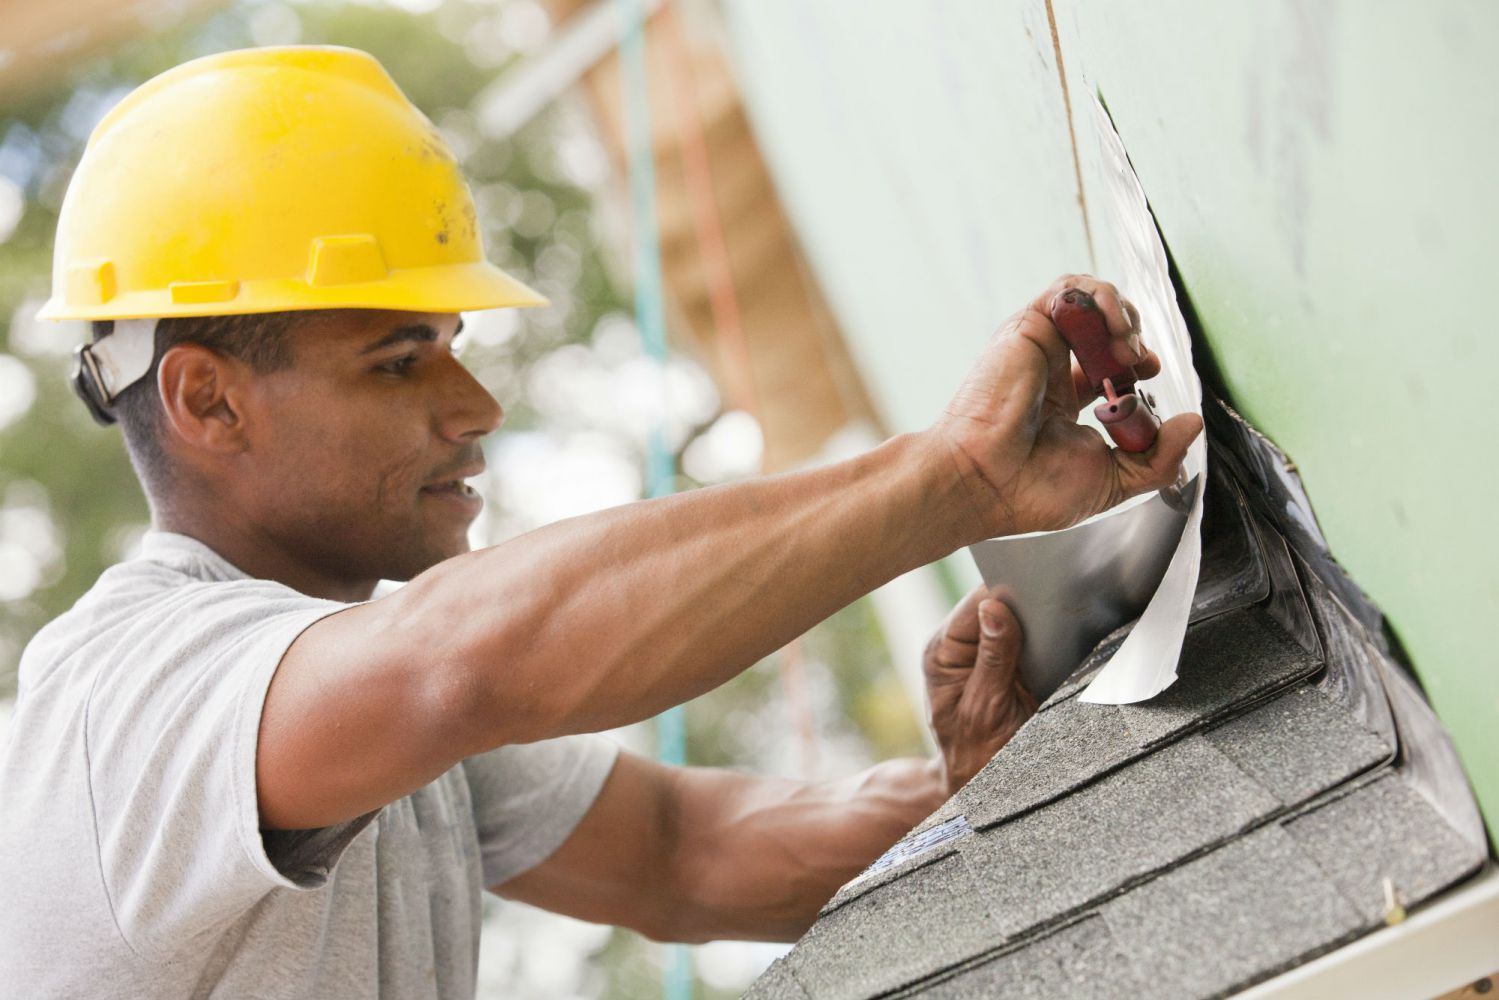 roofing contractors installing shingles in Crescent Spring, KY